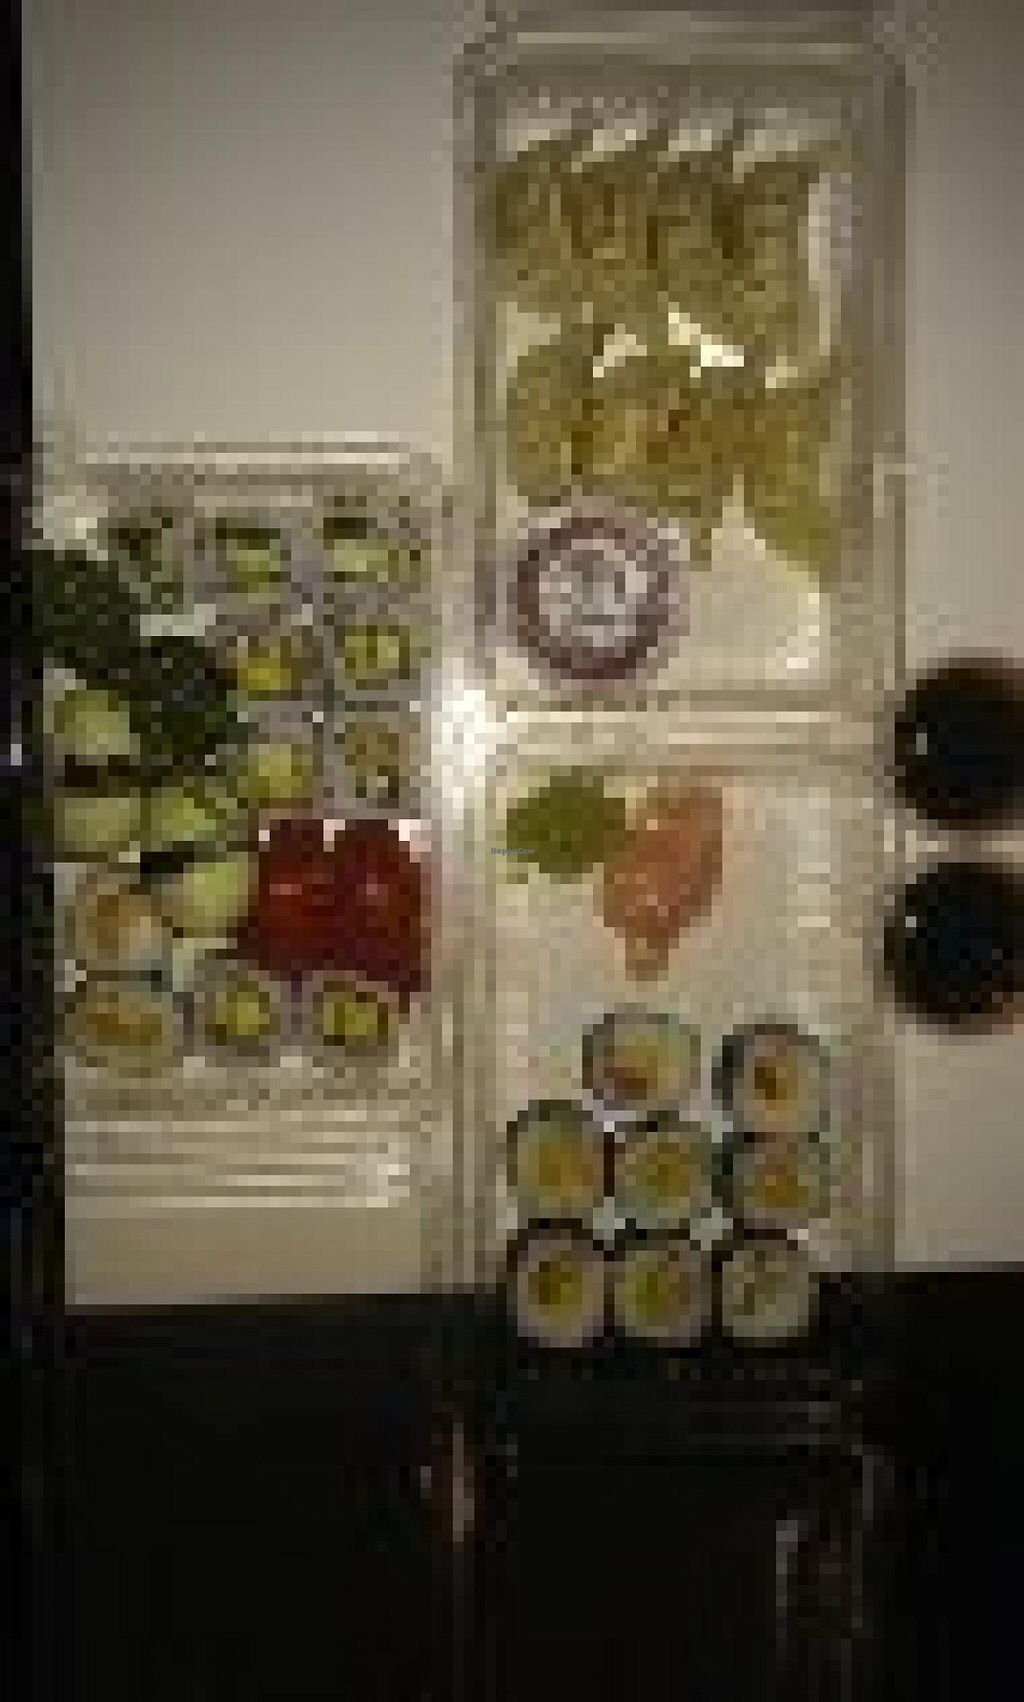 """Photo of Mizushi  by <a href=""""/members/profile/imadenanaimos"""">imadenanaimos</a> <br/>Take out of 25 pieces of vegan sushi and 8 veg gyoza.  Excellent! <br/> October 19, 2014  - <a href='/contact/abuse/image/45248/83368'>Report</a>"""